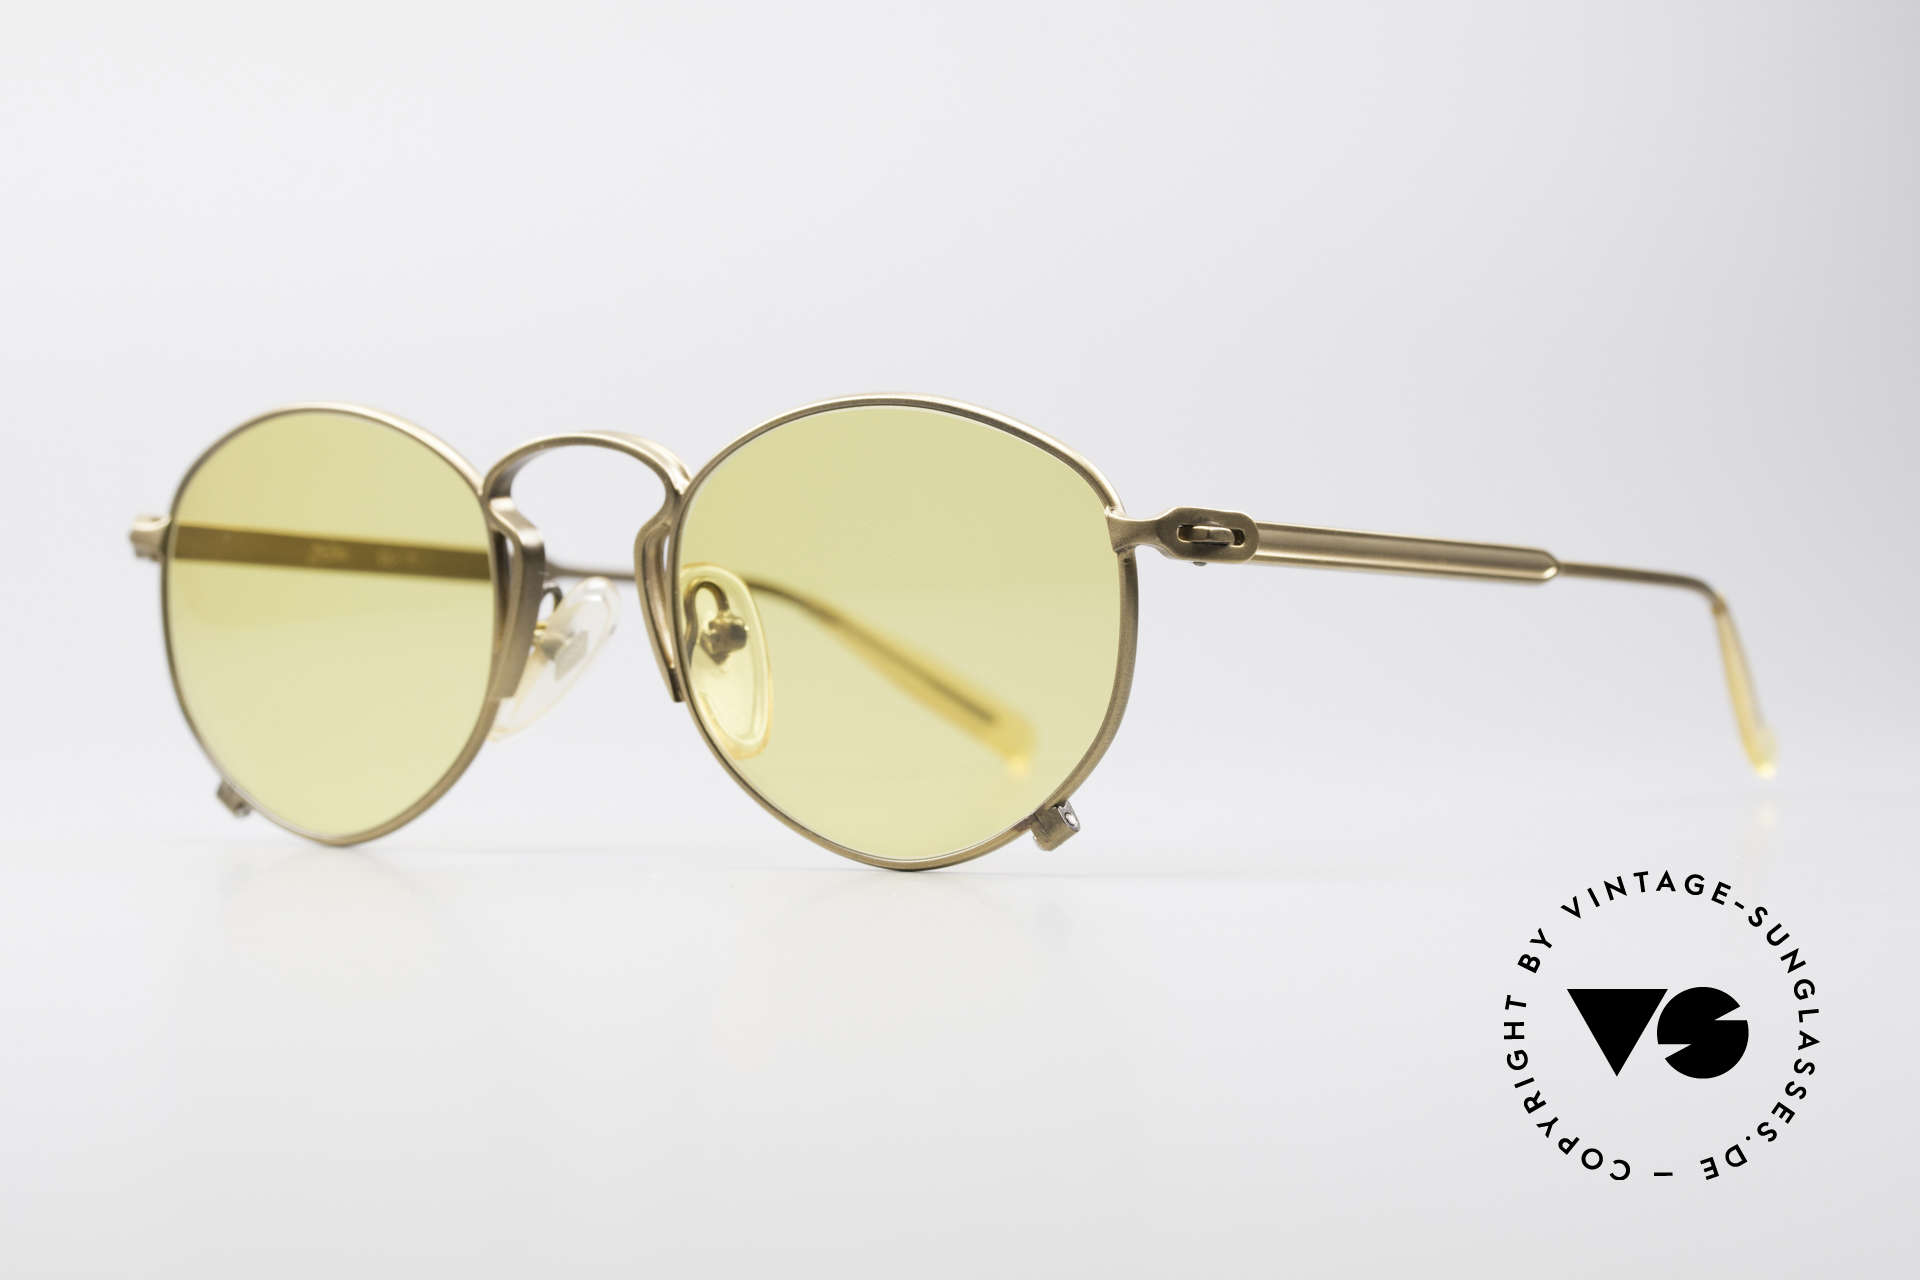 Jean Paul Gaultier 55-1171 Extraordinary Vintage Frame, surpreme crafting & surface quality from 1997, Made for Men and Women